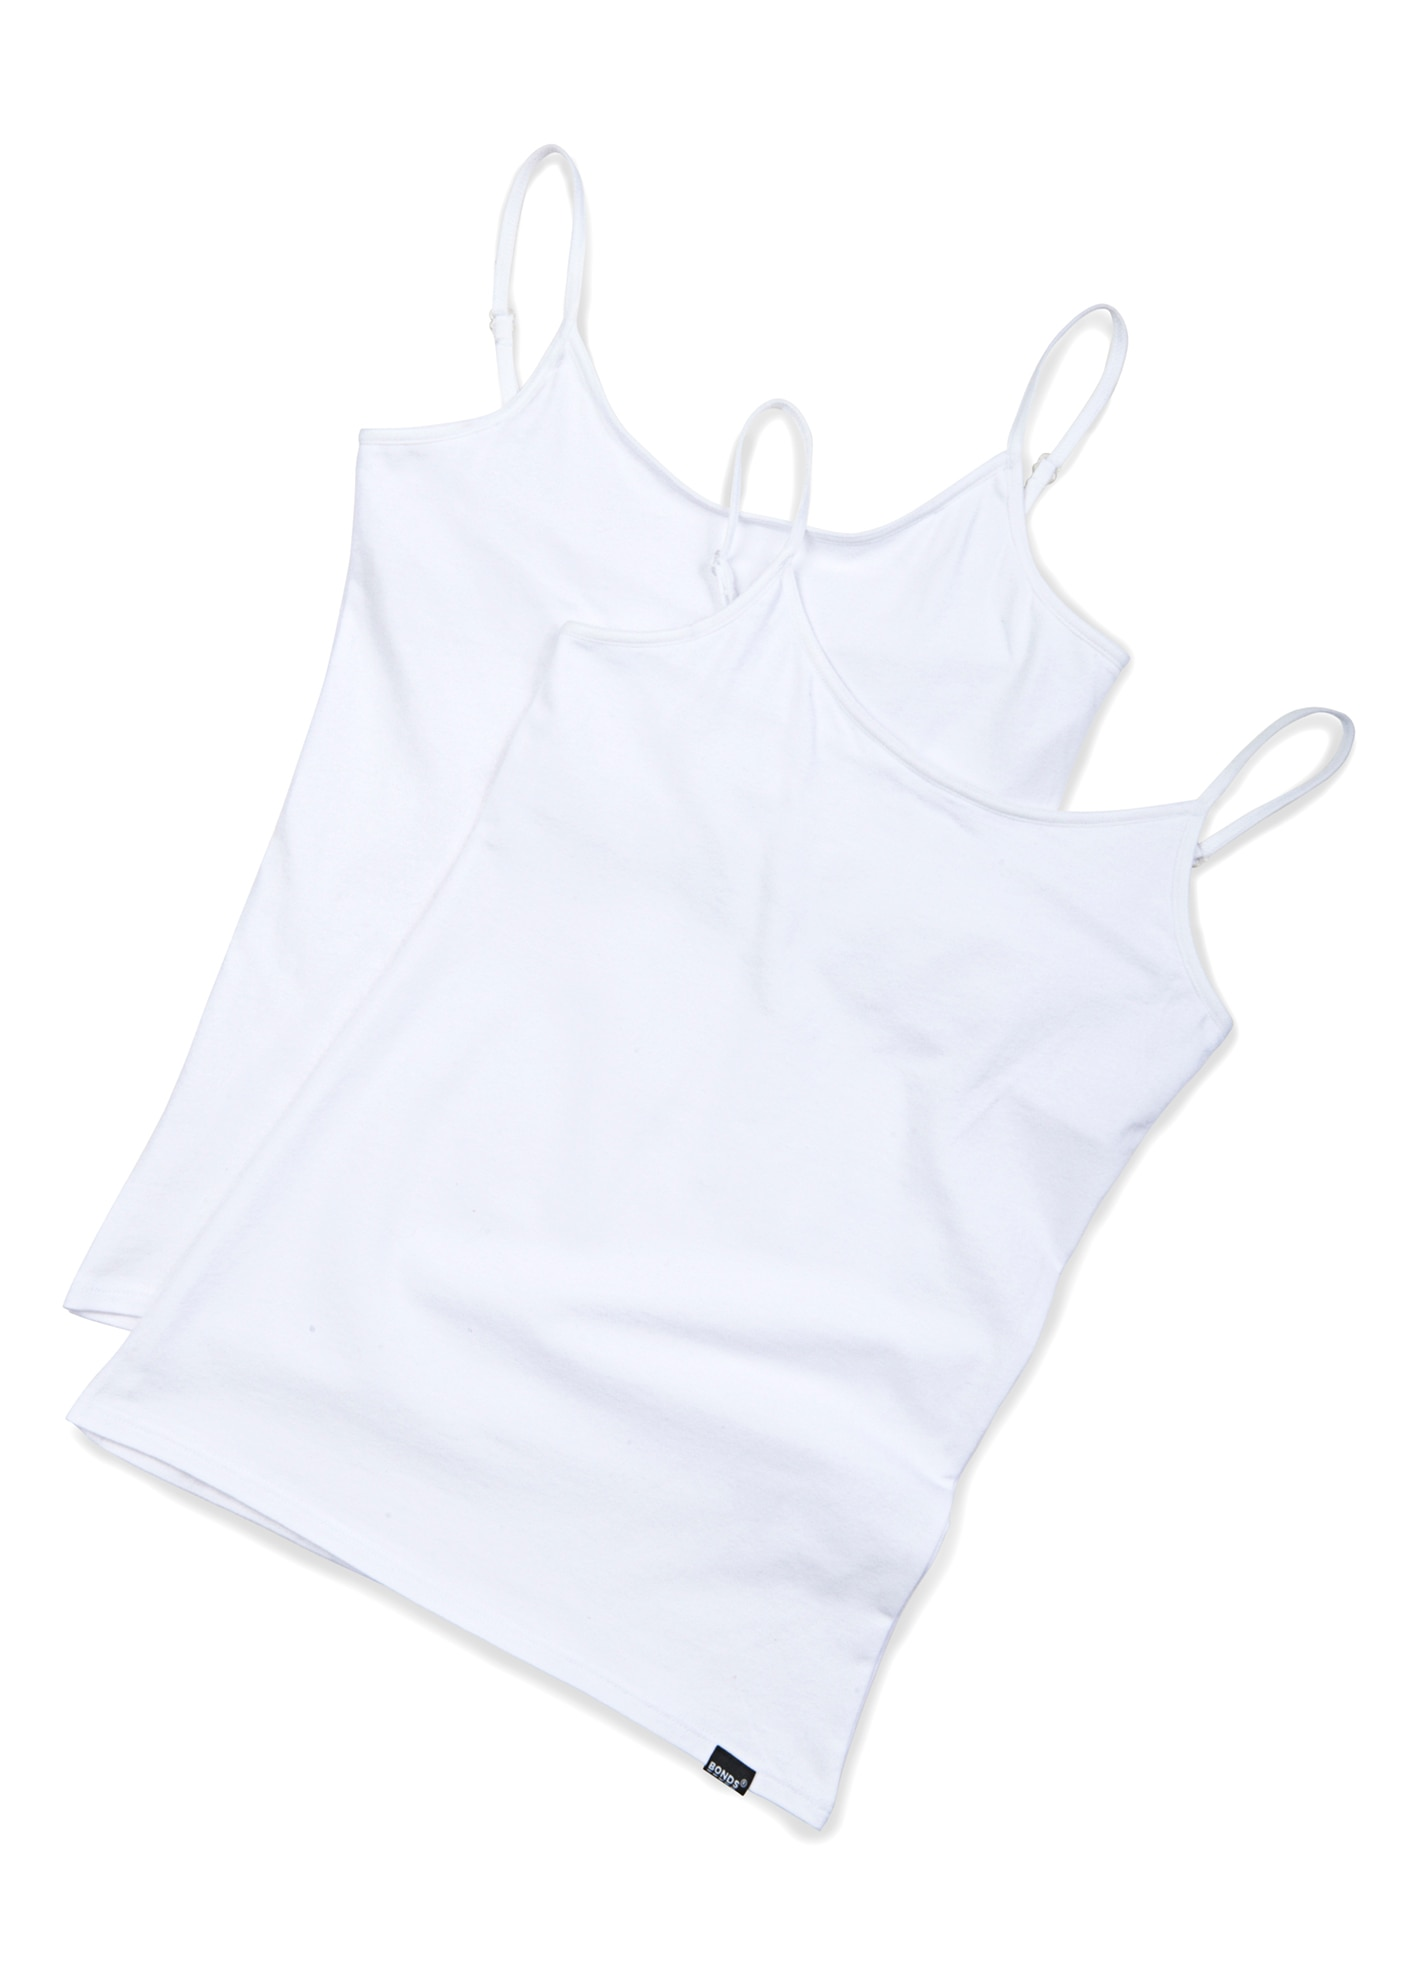 Bonds Hipster Hidden Crop Singlet 6pk - White / 8